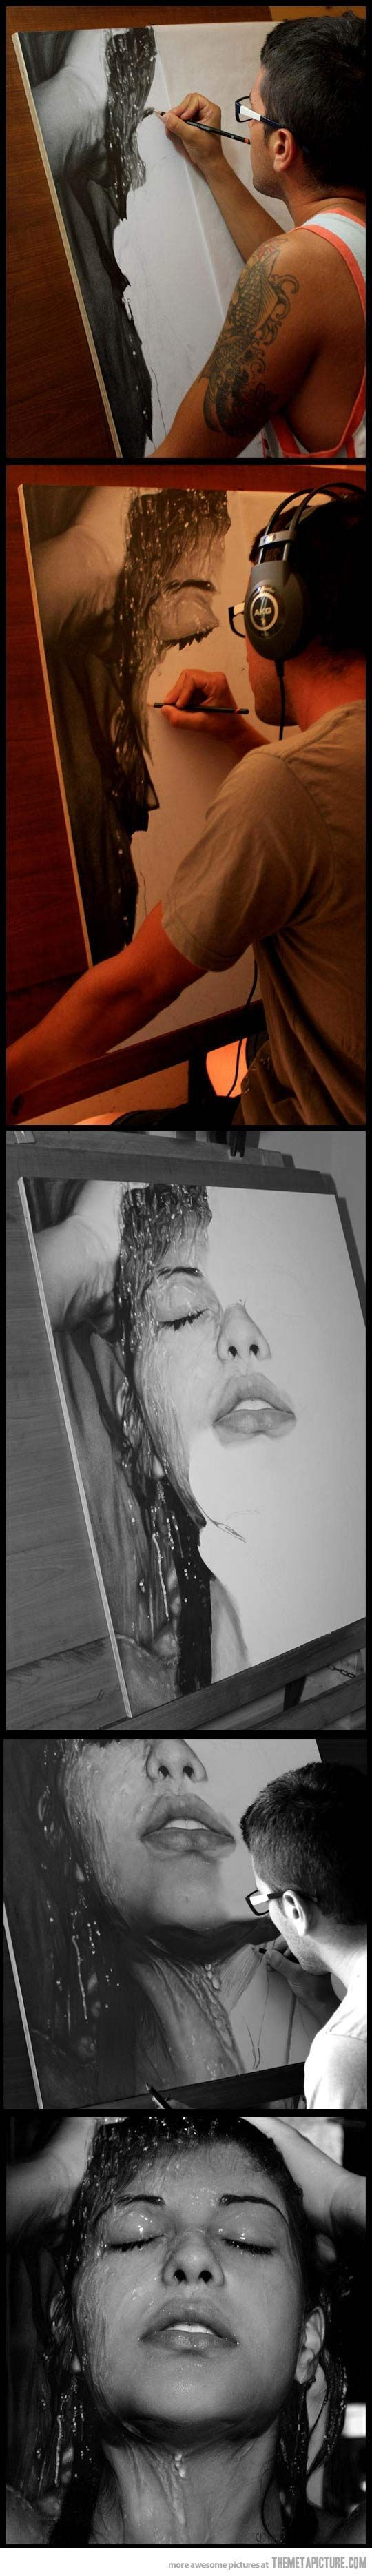 Realistic Drawings Photorealistic pencil drawing by Diego Fazio, Italy-based artist better known as DiegoKoi ABSOLUTELY AMAZING!! - Italy-based artist Diego Fazio, better known as DiegoKoi, is bound to blow you away with his incredible drawing skills. One of his newer pieces titled Sensazioni is an unbelievably hyperrealistic pencil drawing of a woman that has caused people to question the truth of its medium. Is it really done in pencil? The